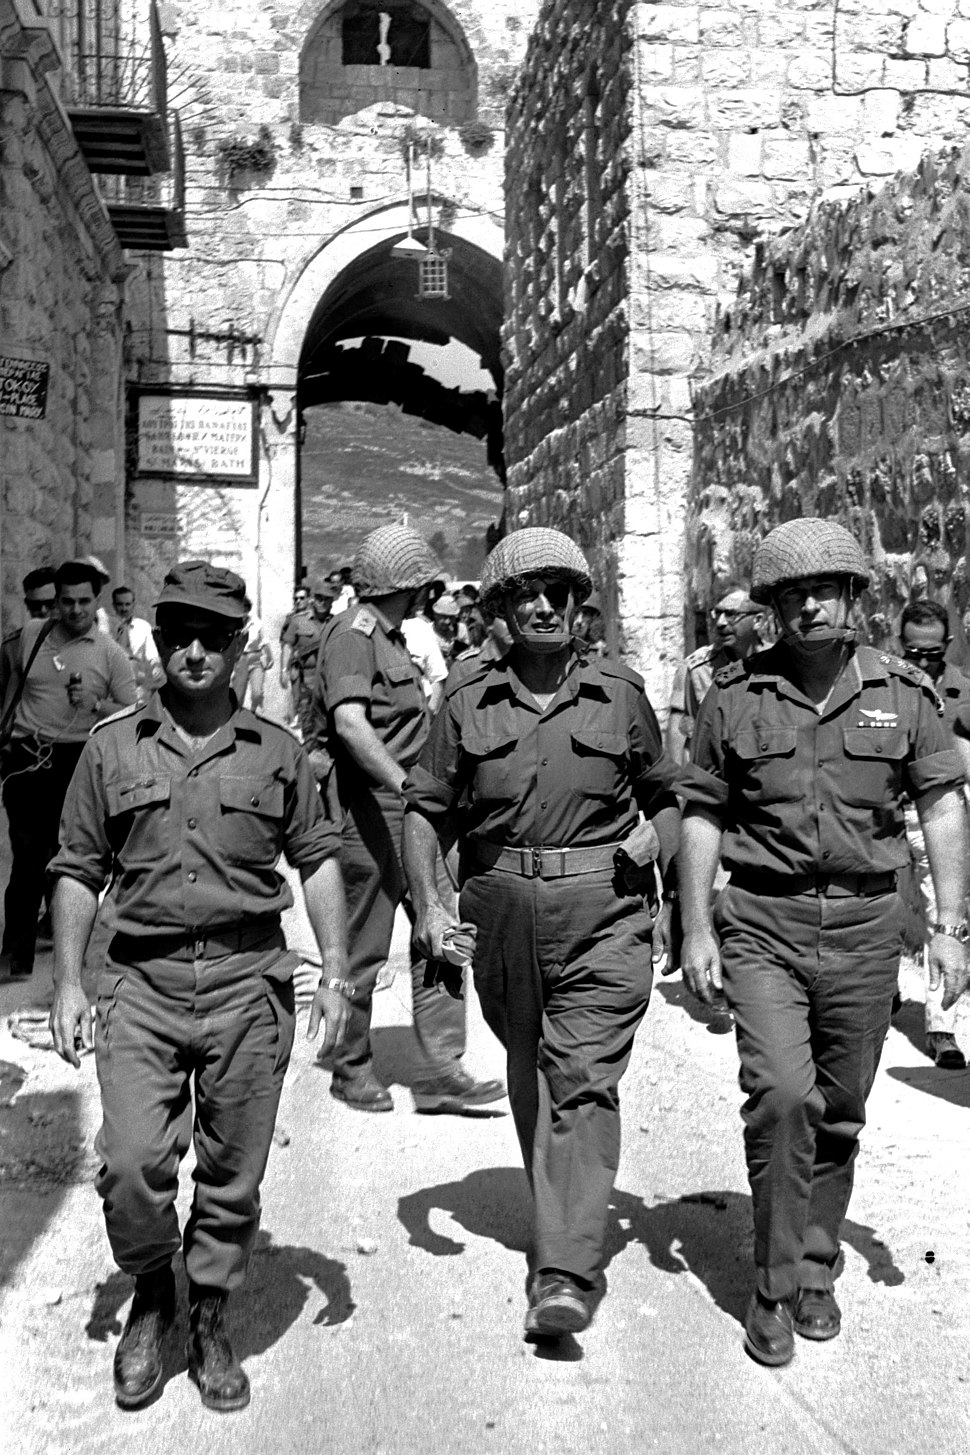 Flickr - Israel Defense Forces - Life of Lt. Gen. Yitzhak Rabin, 7th IDF Chief of Staff in photos (14)